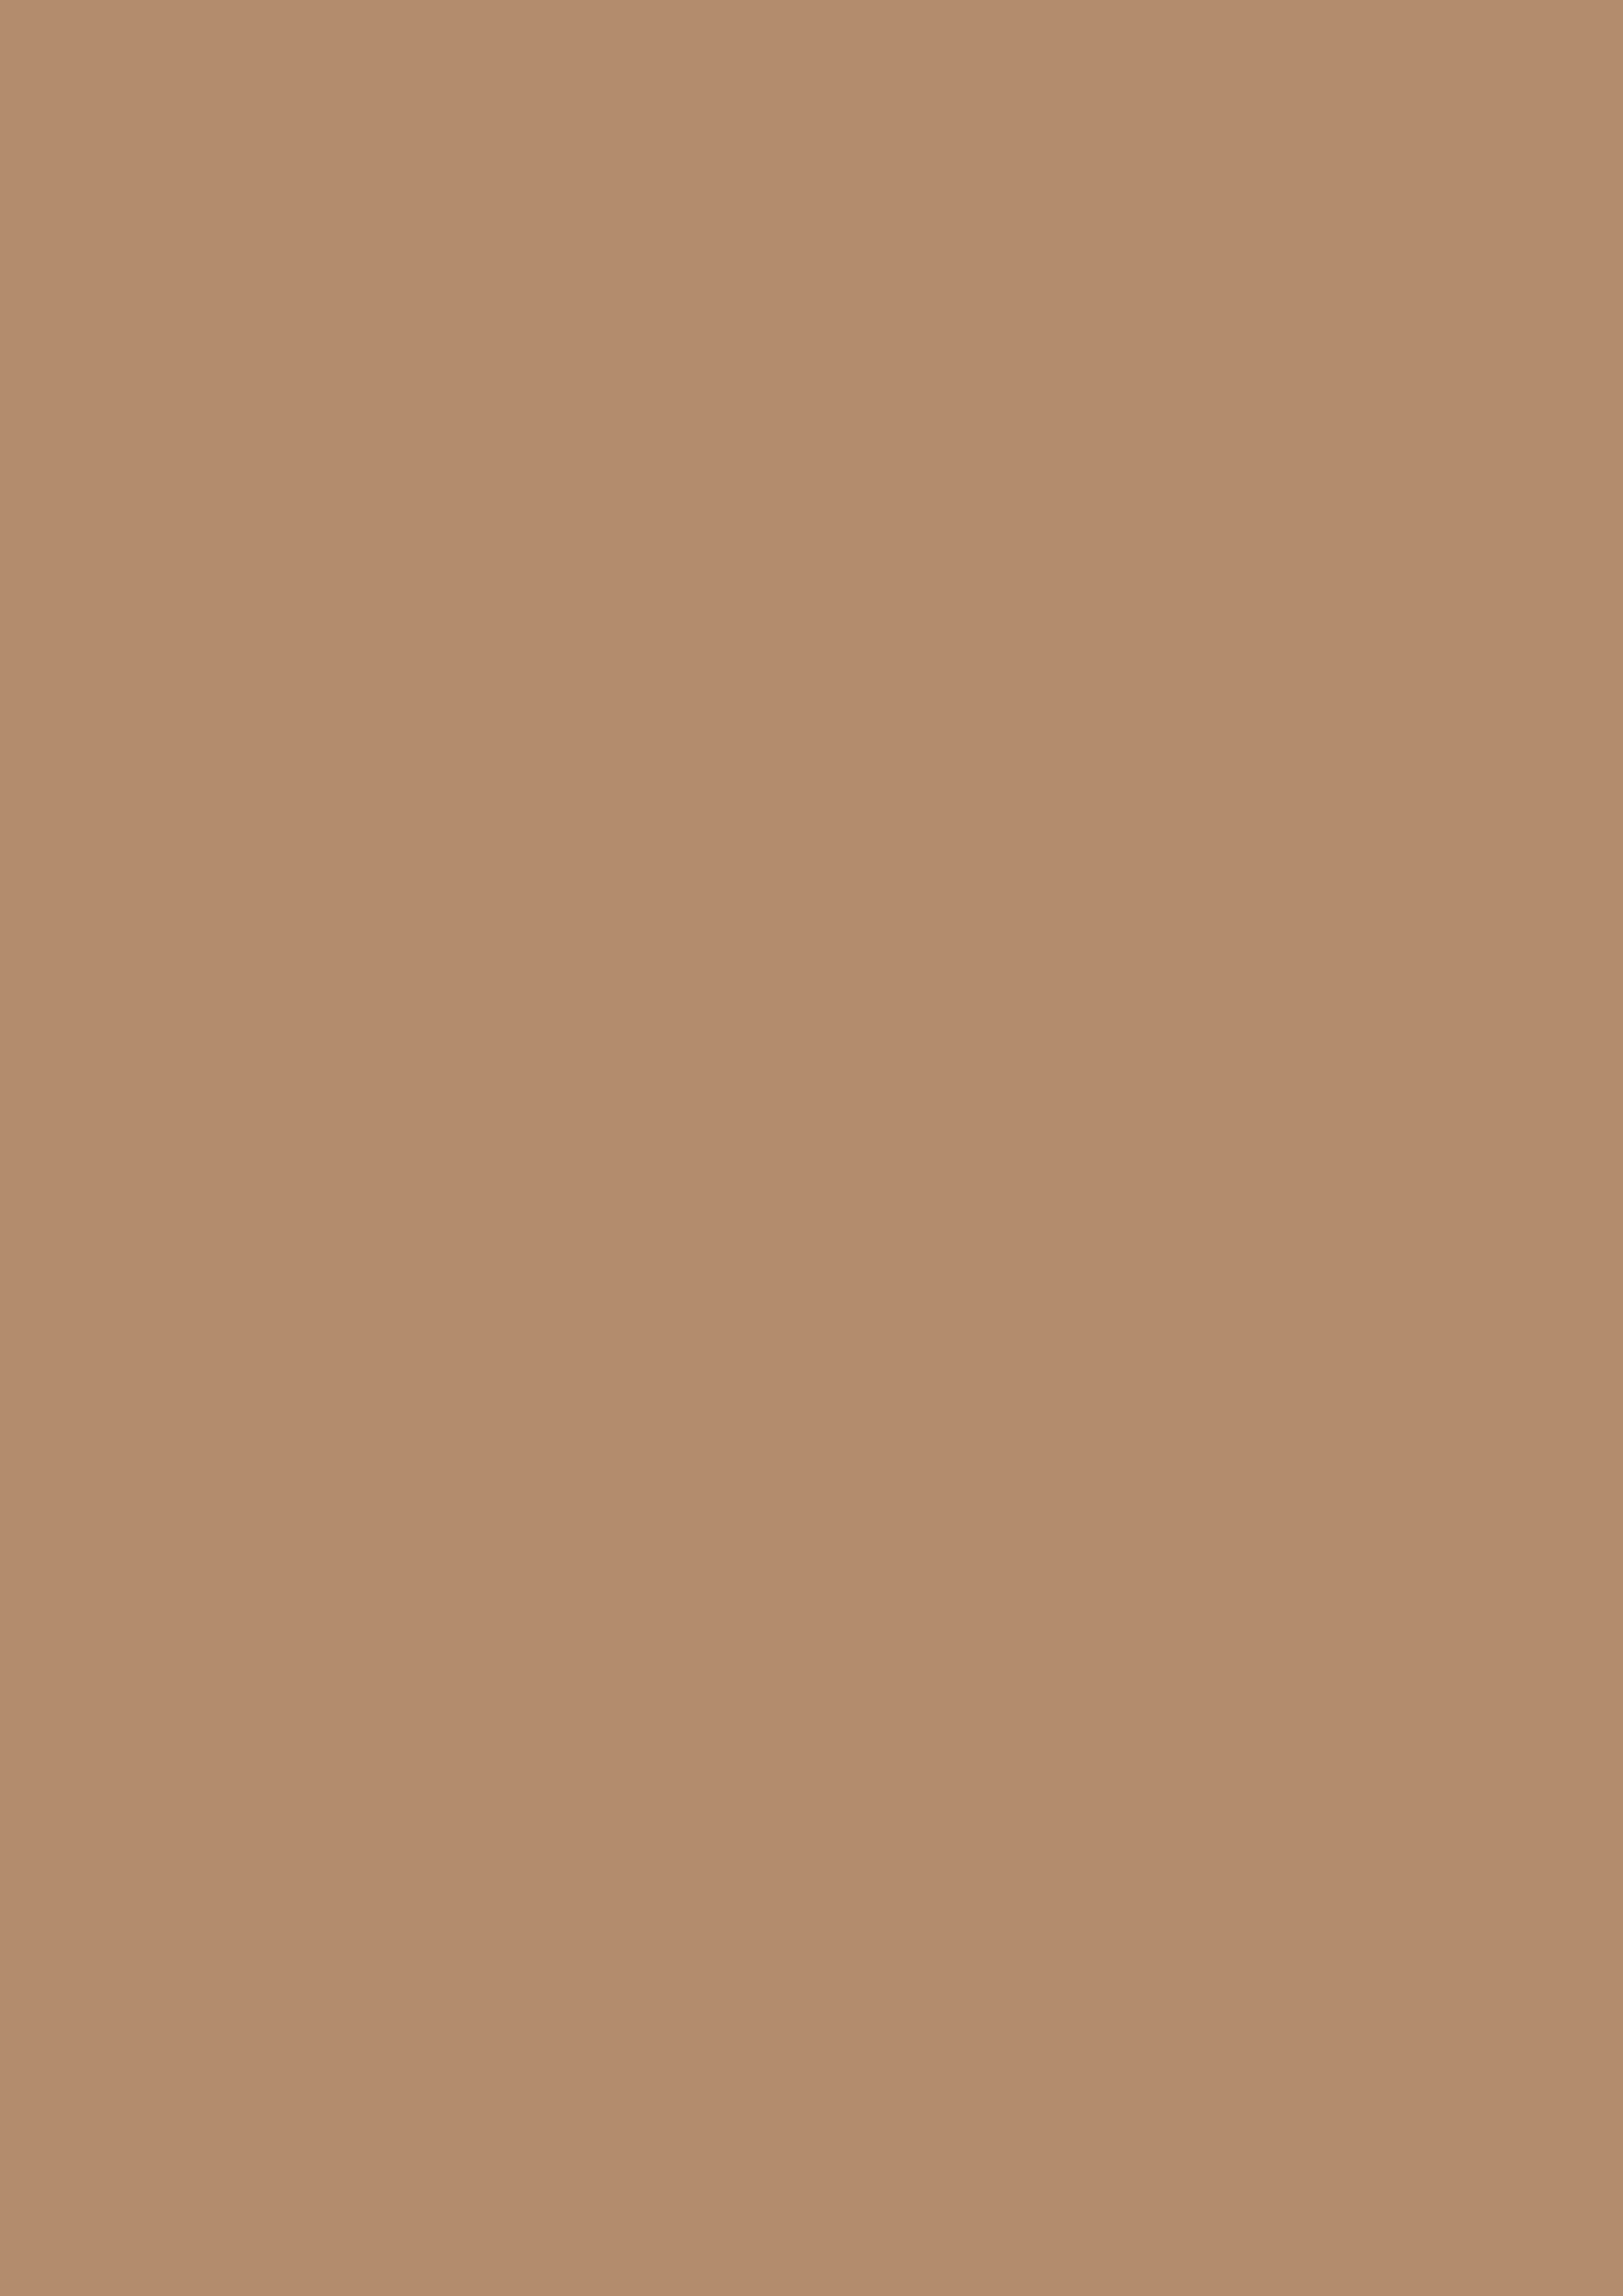 2480x3508 Light Taupe Solid Color Background